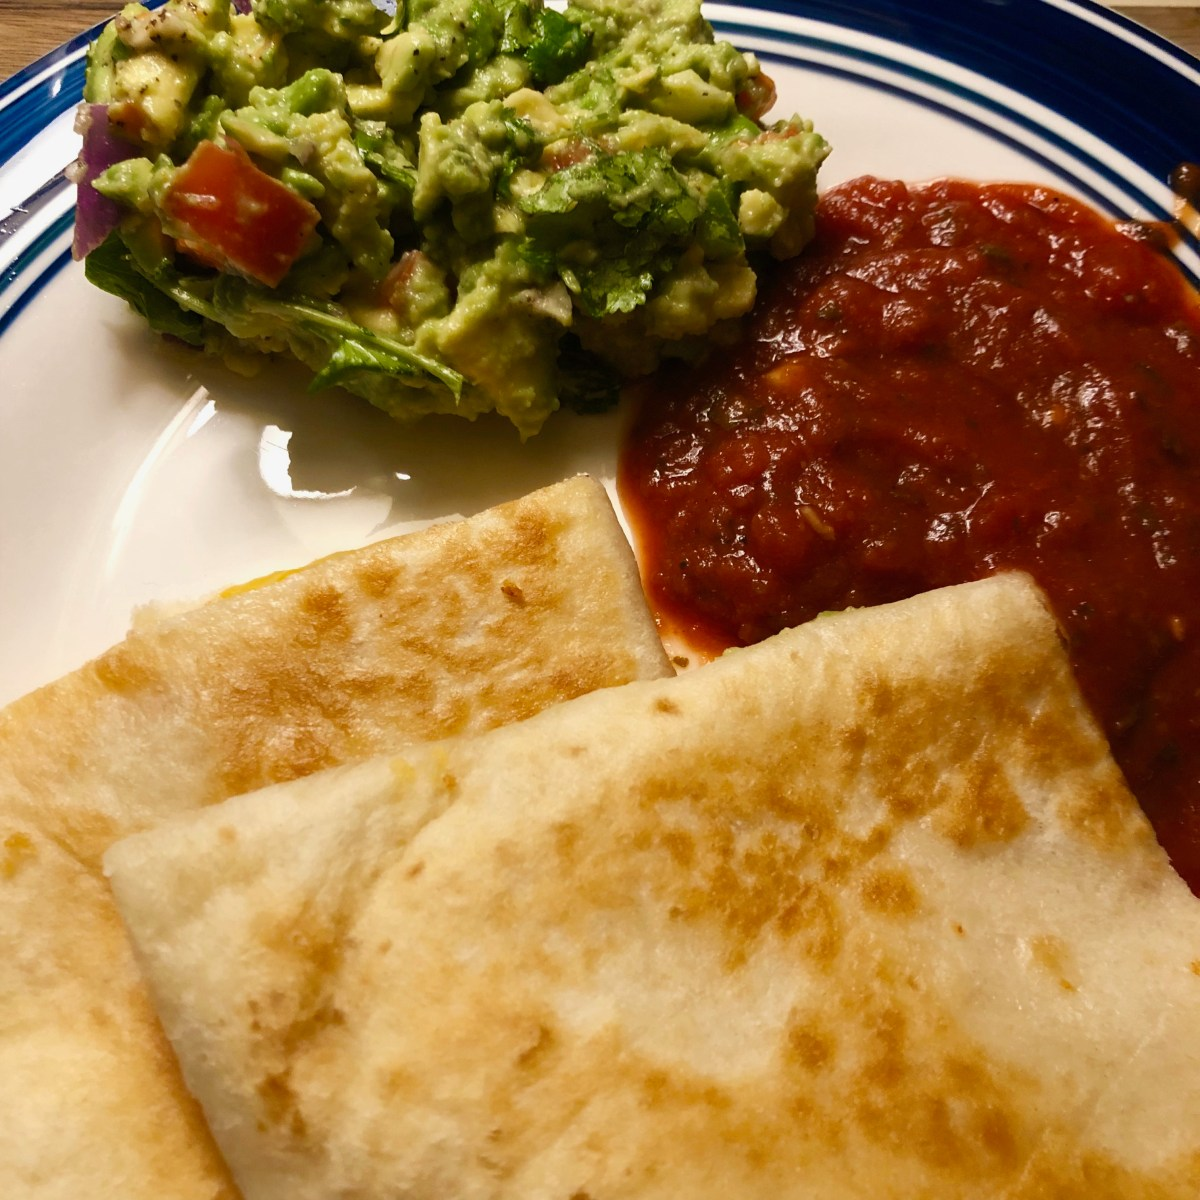 What's for supper? Vol. 160: Fleischschande and You